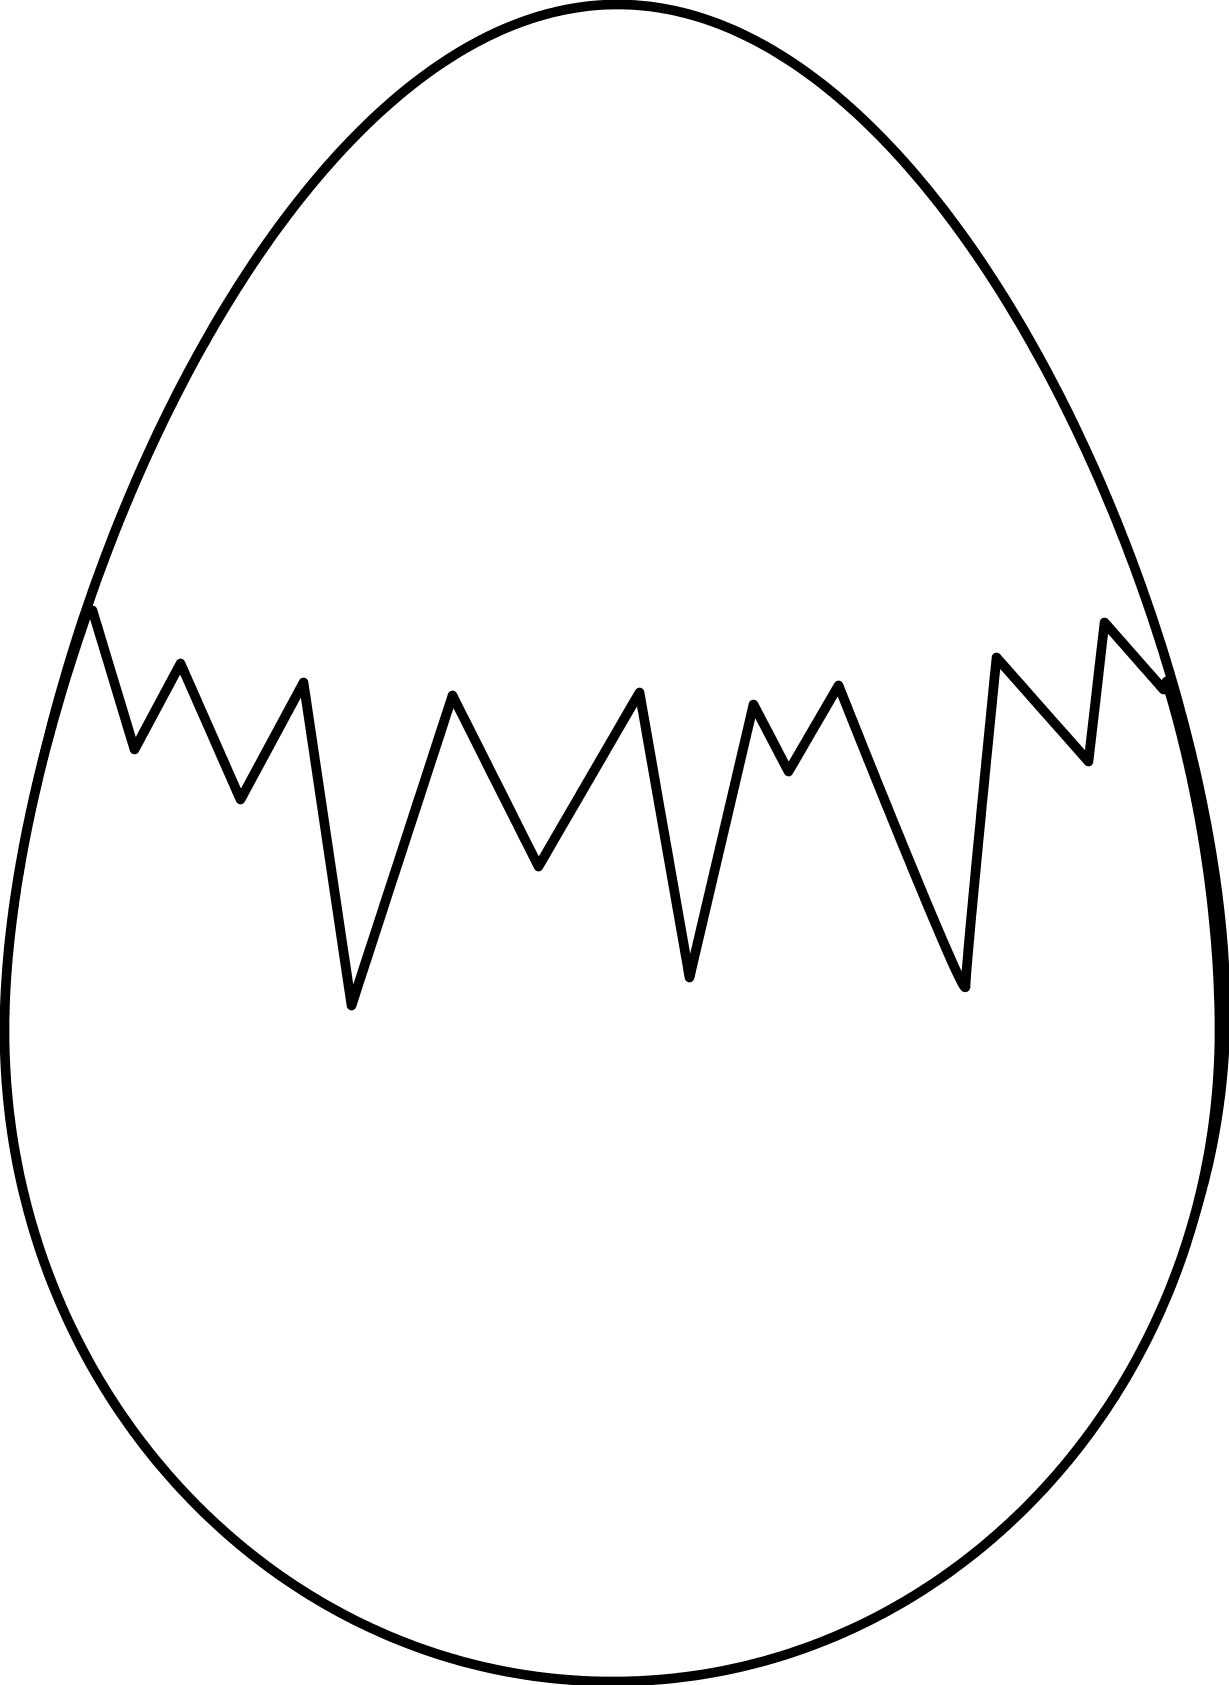 egg clipart black and white